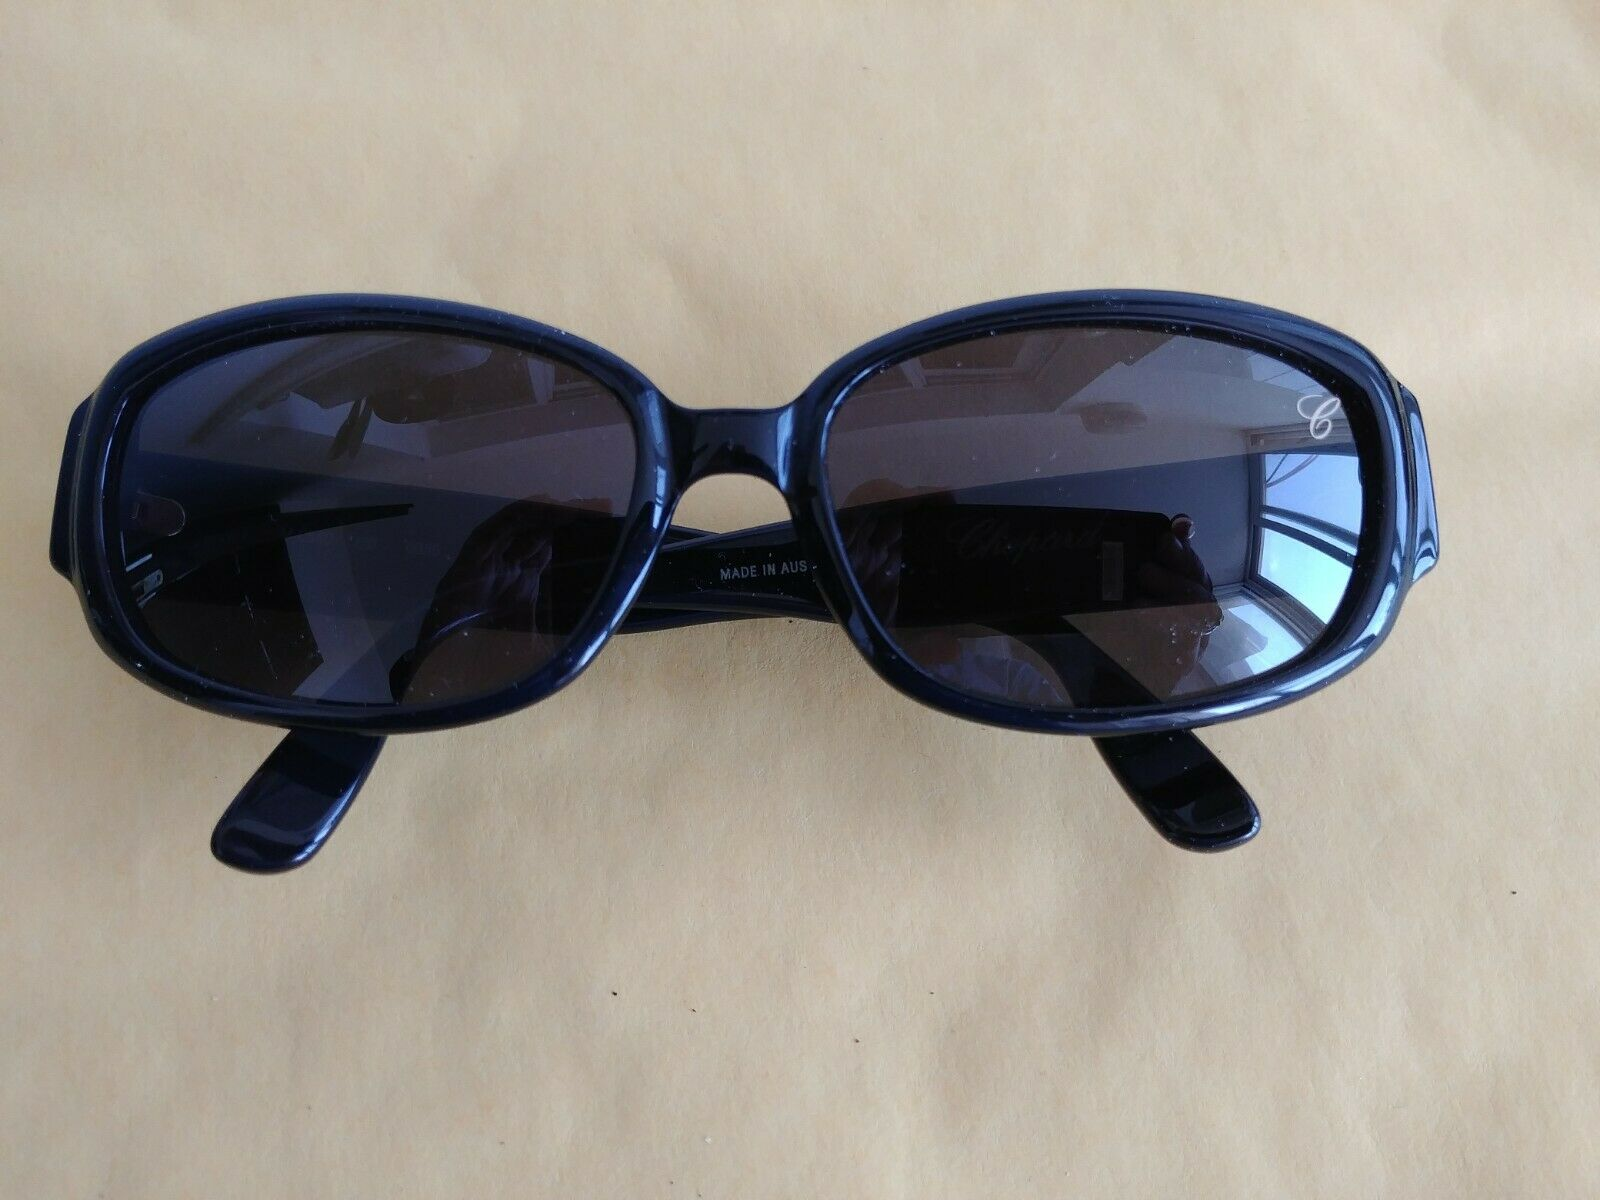 Chopard Sunglasses Authentic Was in store. Quality lens NOS made in Austria